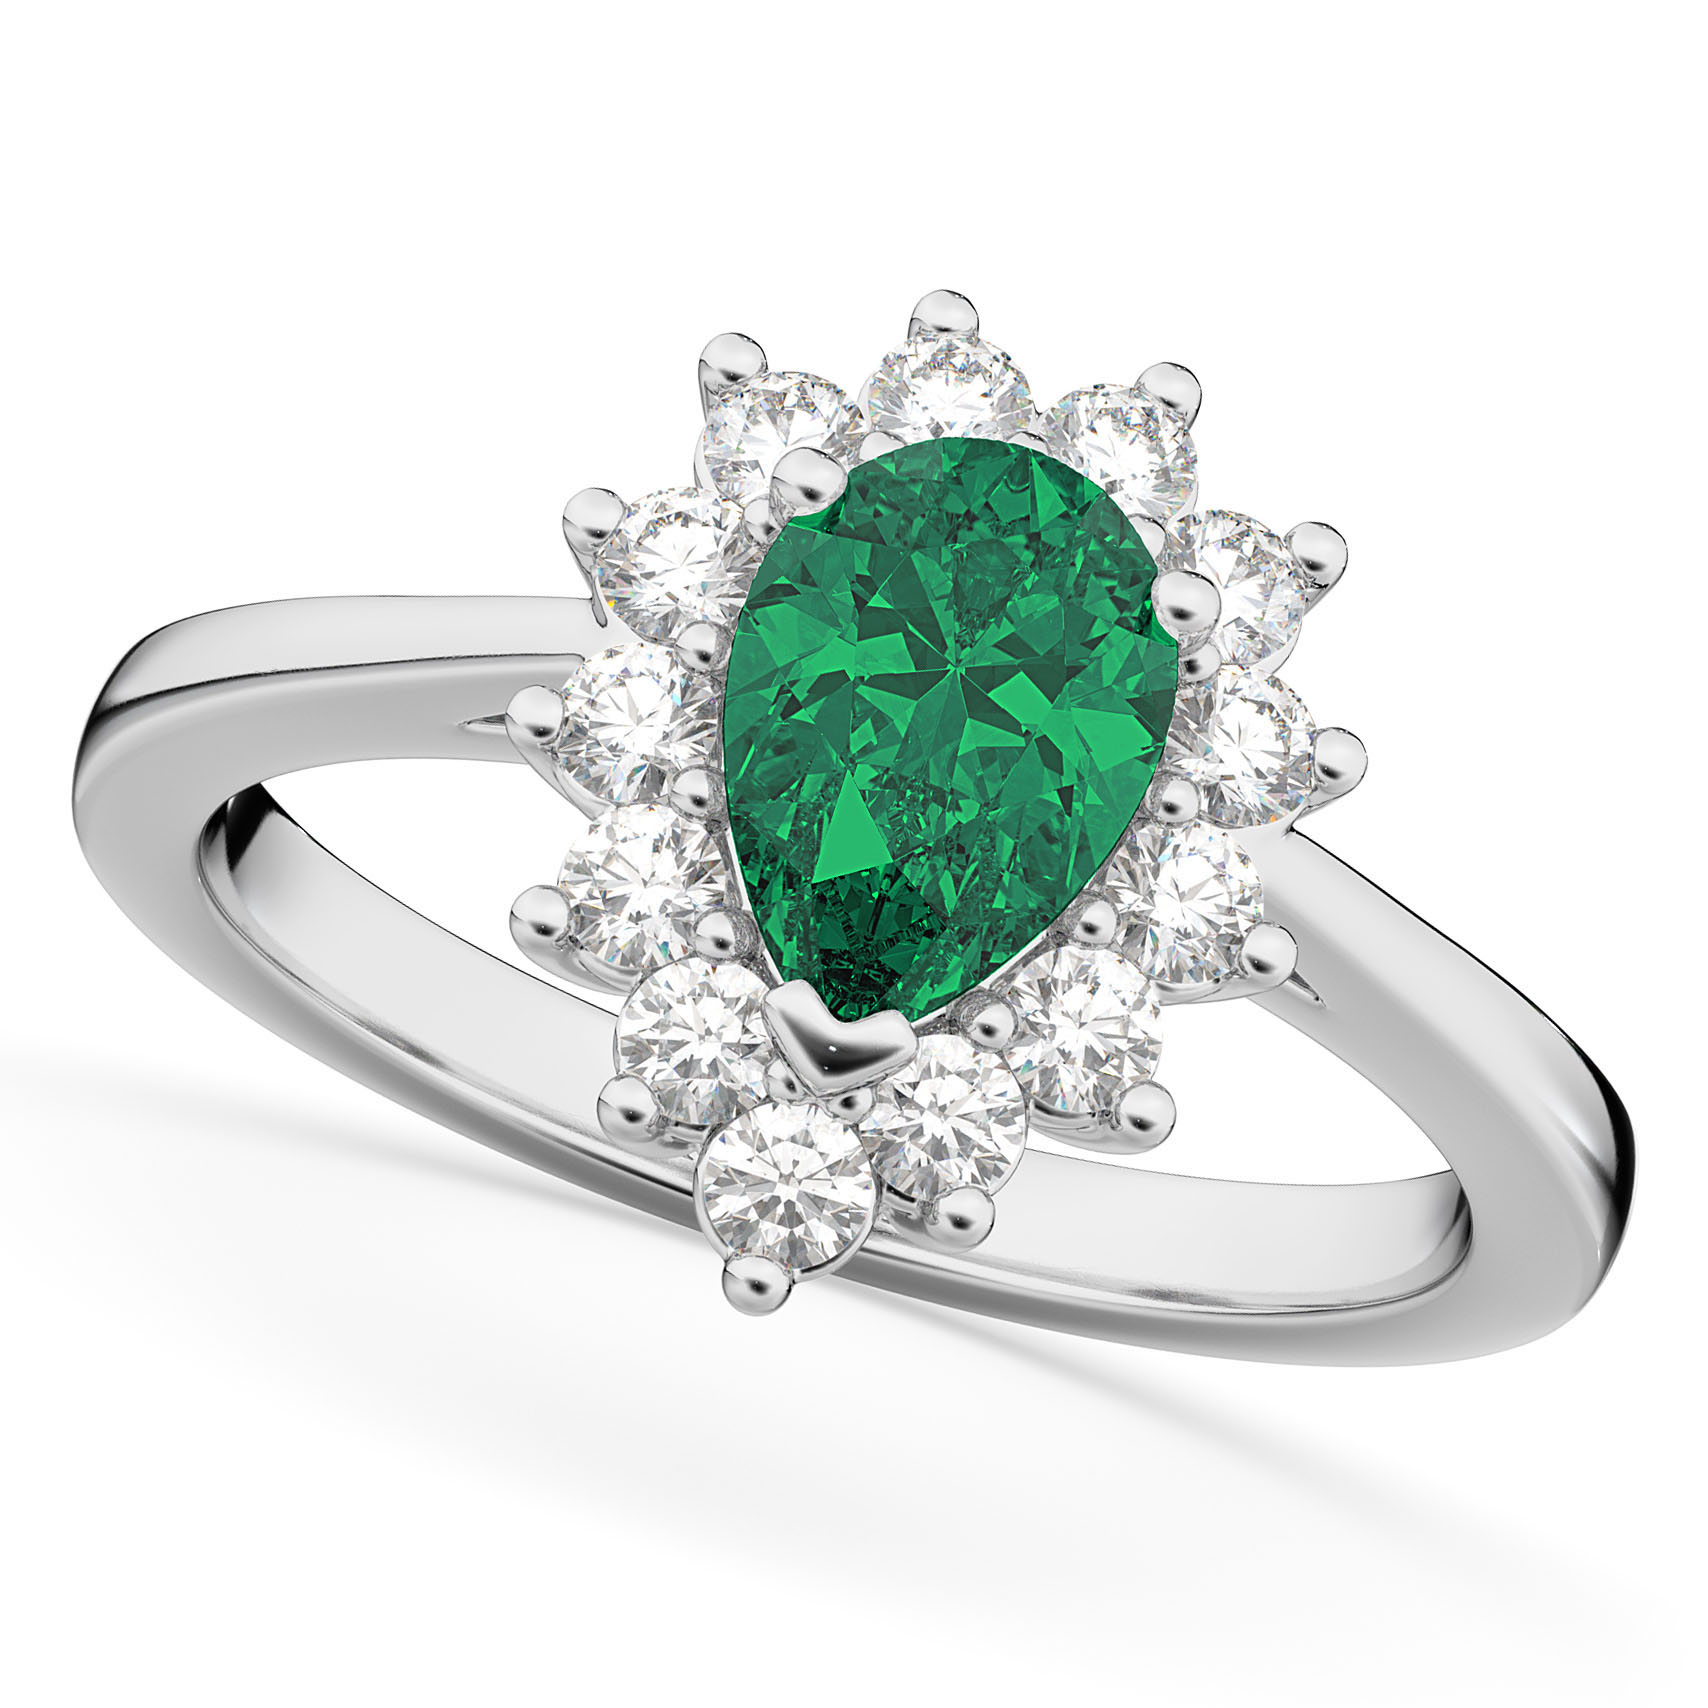 Halo Emerald & Diamond Floral Pear Shaped Fashion Ring 14k White Gold (1.12ct)